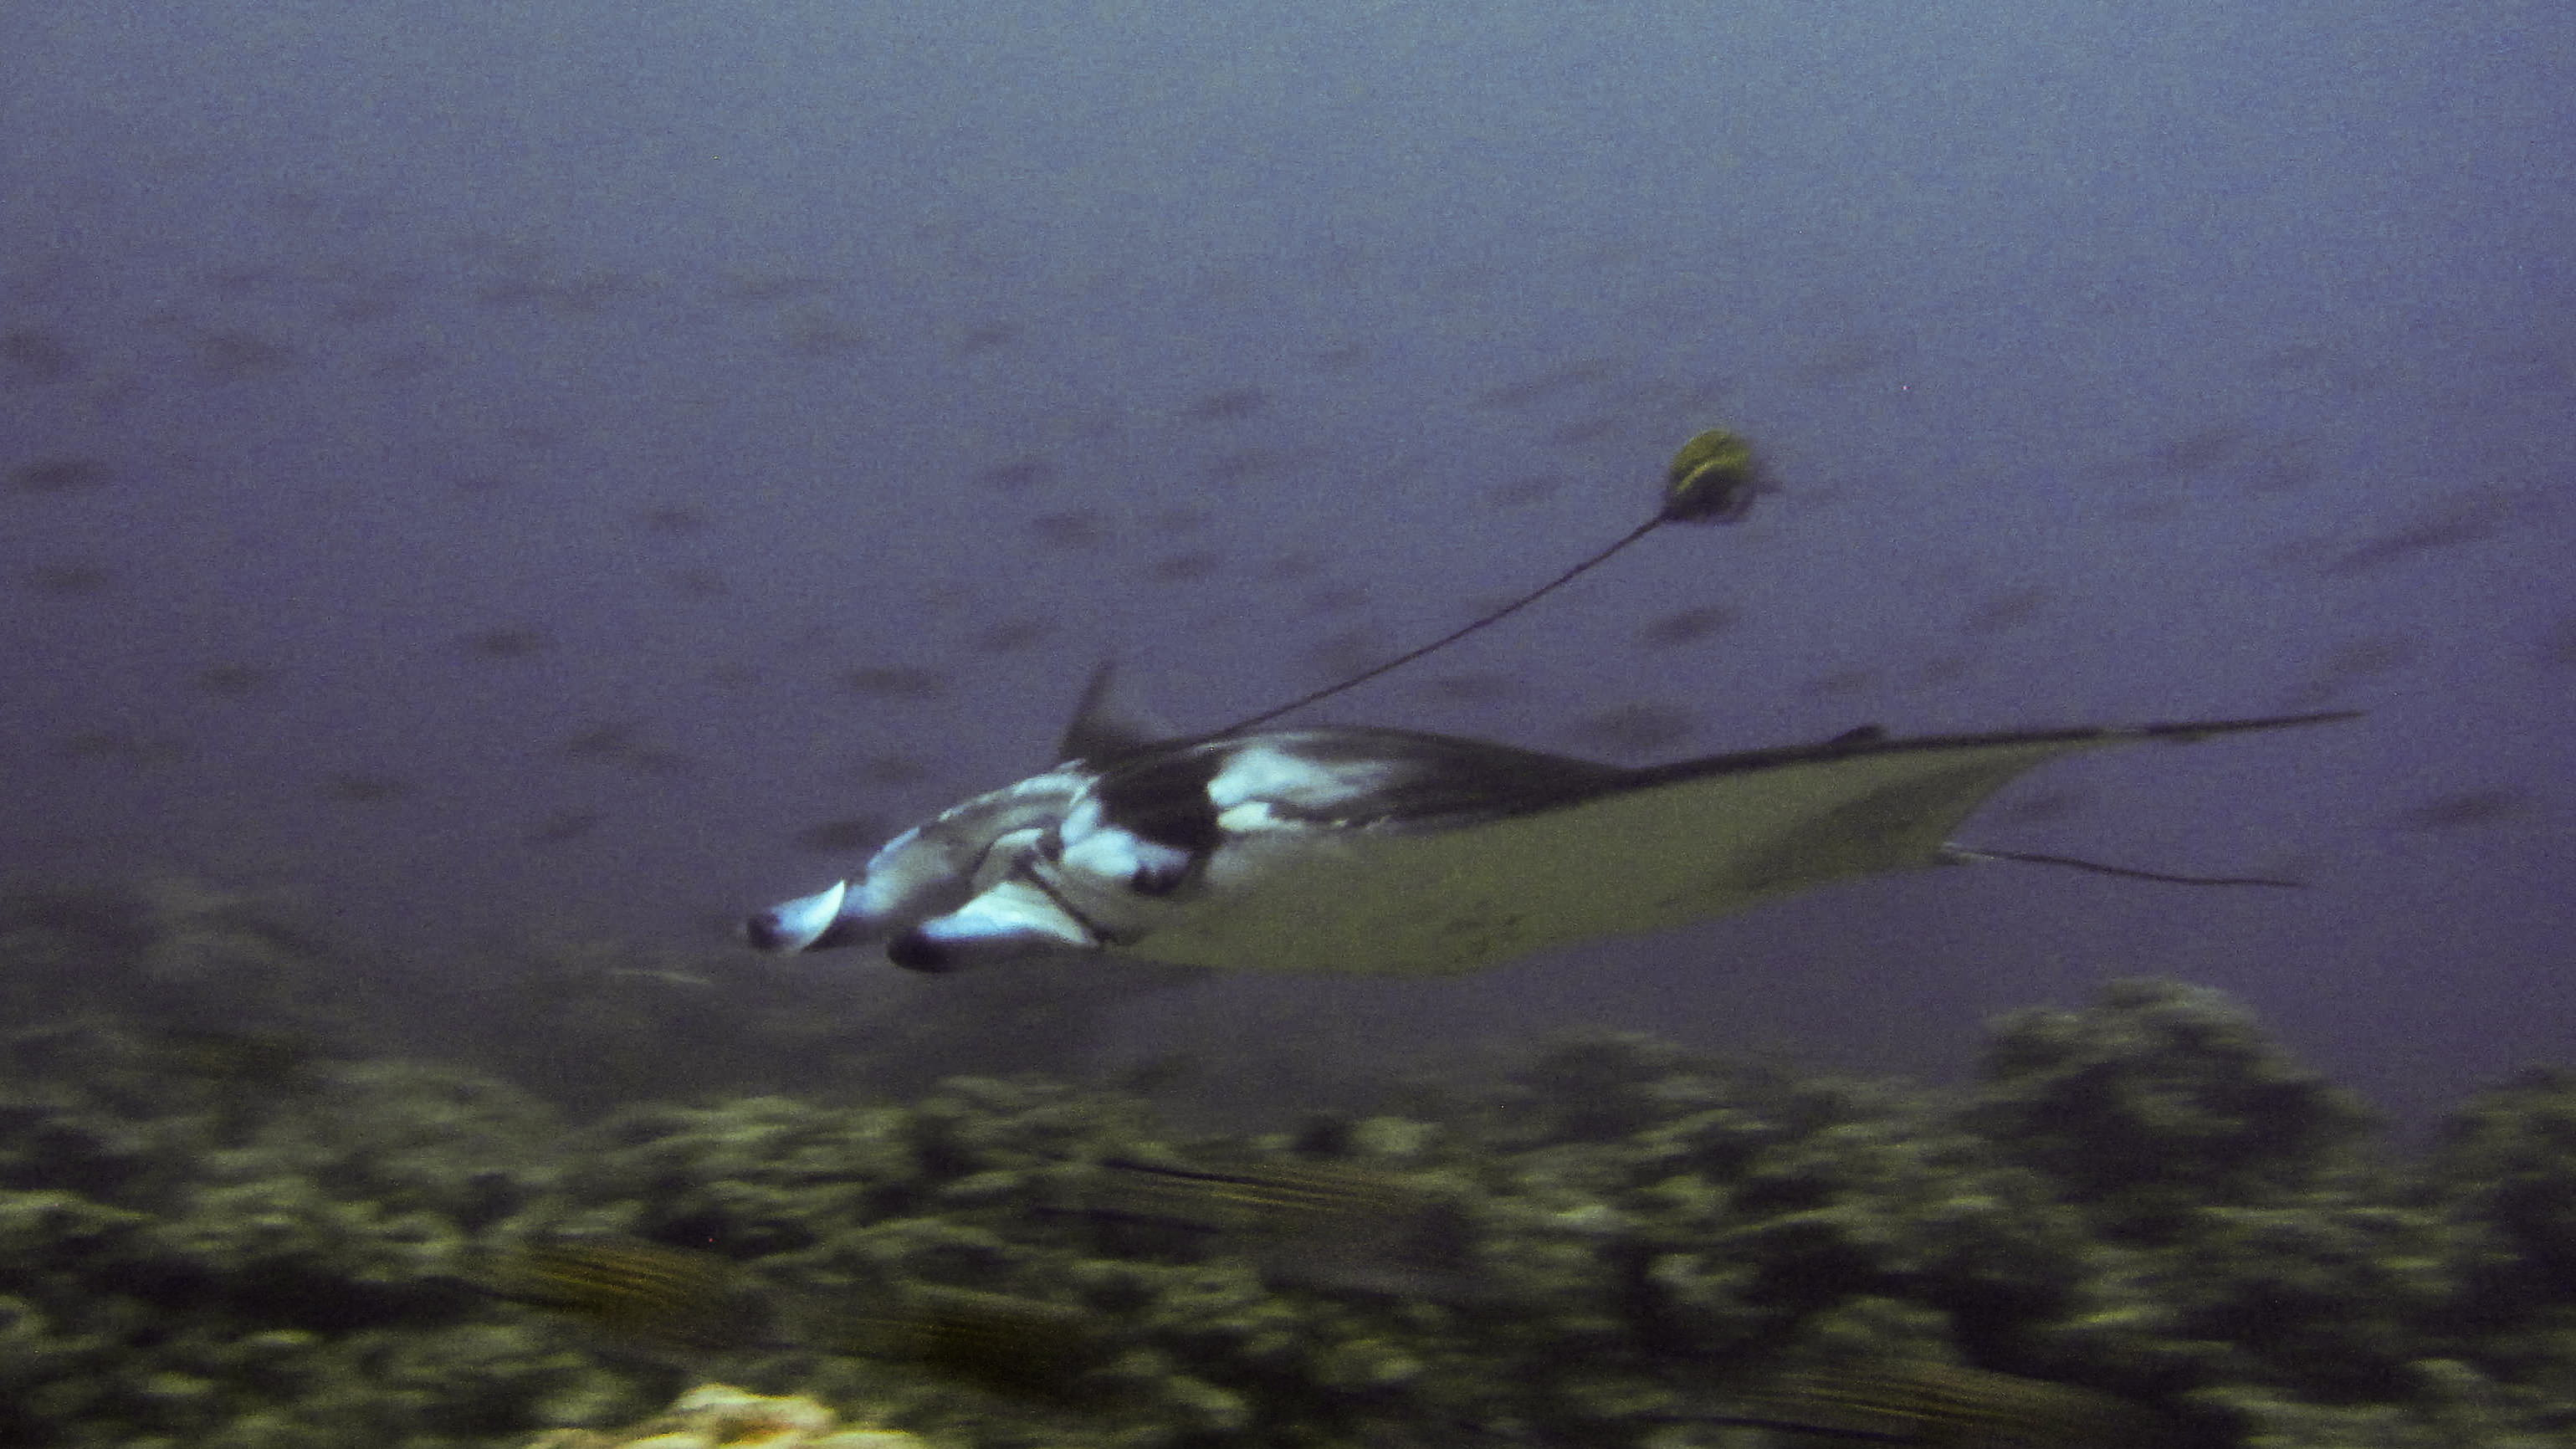 Manta with Bouy and rope around it